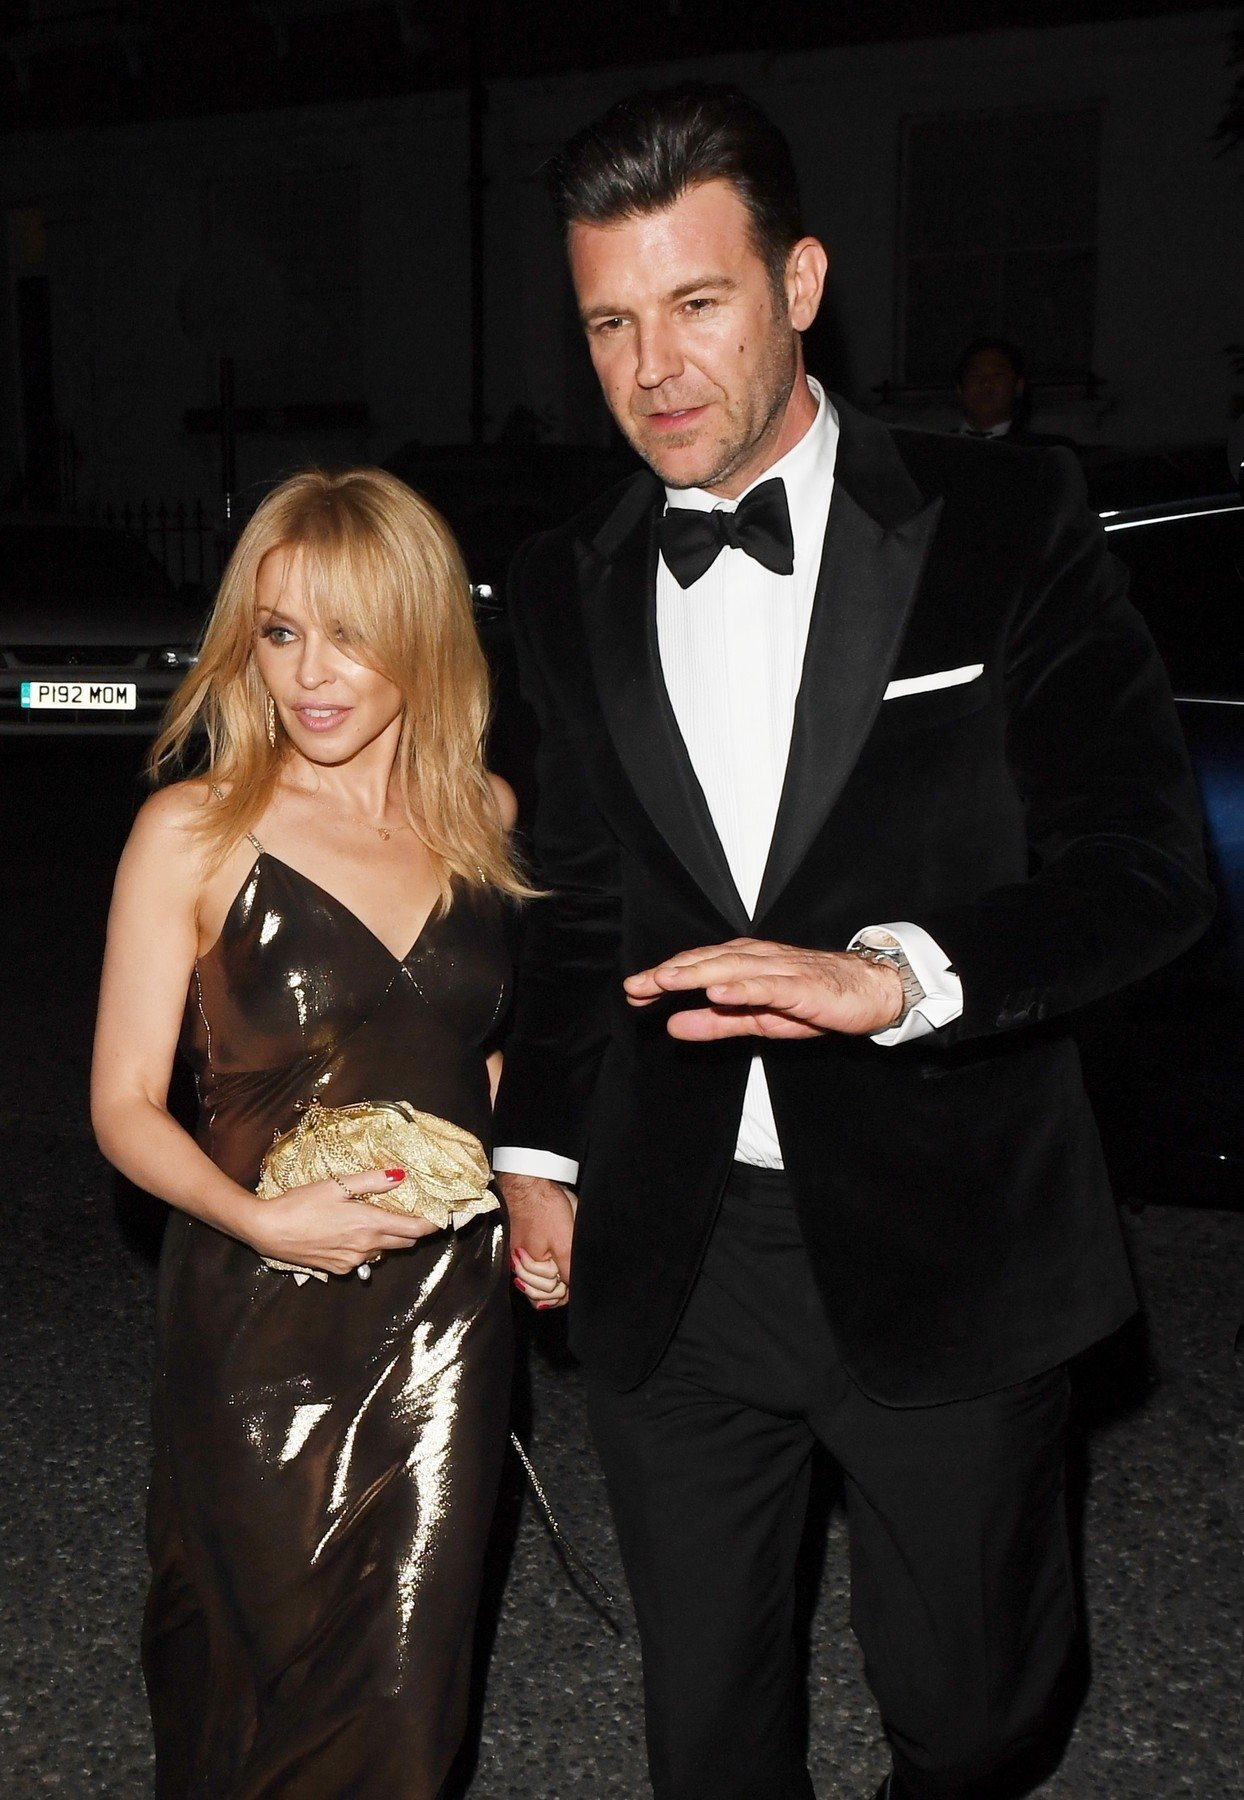 BGUK_1328081 - London, UNITED KINGDOM  - Kylie Minogue goes red carpet official with new Beau Paul Solomons at the GQ Awards in London. Kylie was seen heading to the after party at Fitzroy Yard in Primrose Hill with her new boyfriend Paul following the awards. Arriving at the party boyfriend Paul was seen with his hand placed on Kylie Minogue's chest as he helped her out of the car.  Pictured: Kylie Minogue, Paul Solomons    *UK Clients - Pictures Containing Children Please Pixelate Face Prior To Publication*, Image: 385553625, License: Rights-managed, Restrictions: , Model Release: no, Credit line: Profimedia, Backgrid UK